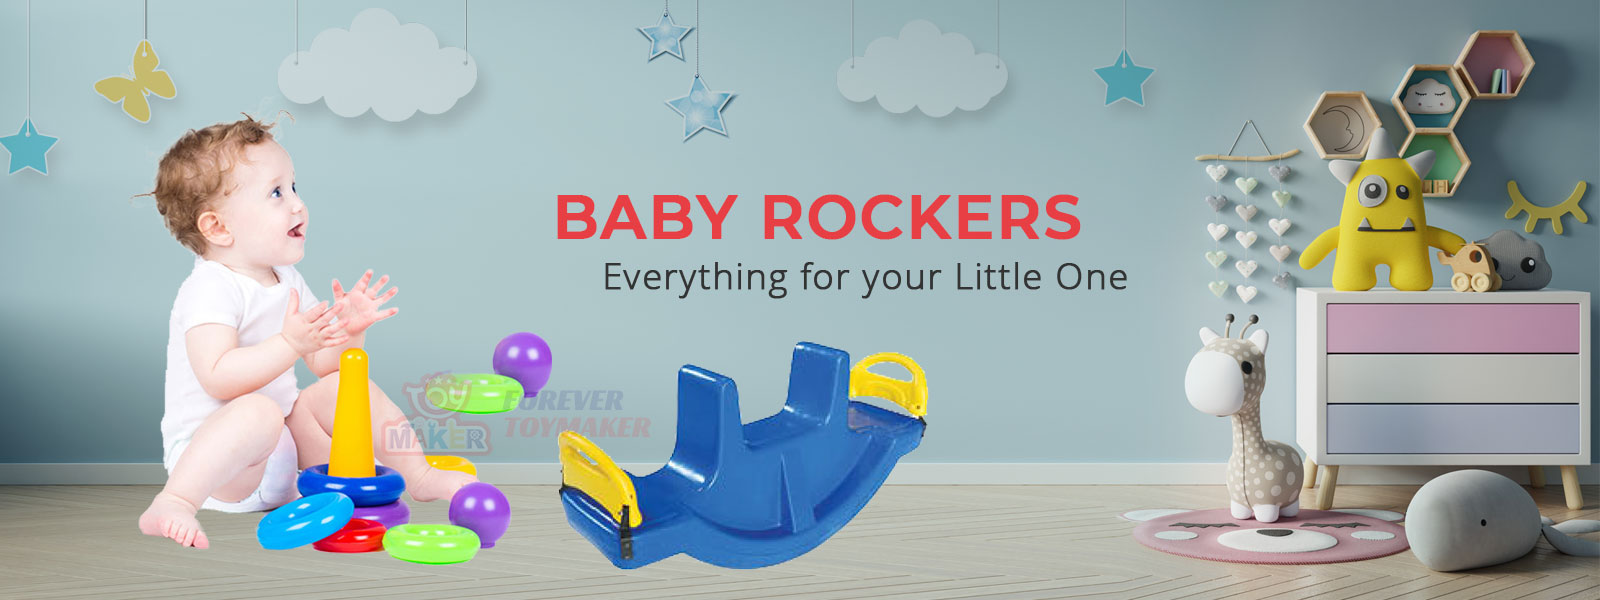 Baby Rockers Manufacturers in Prayagraj